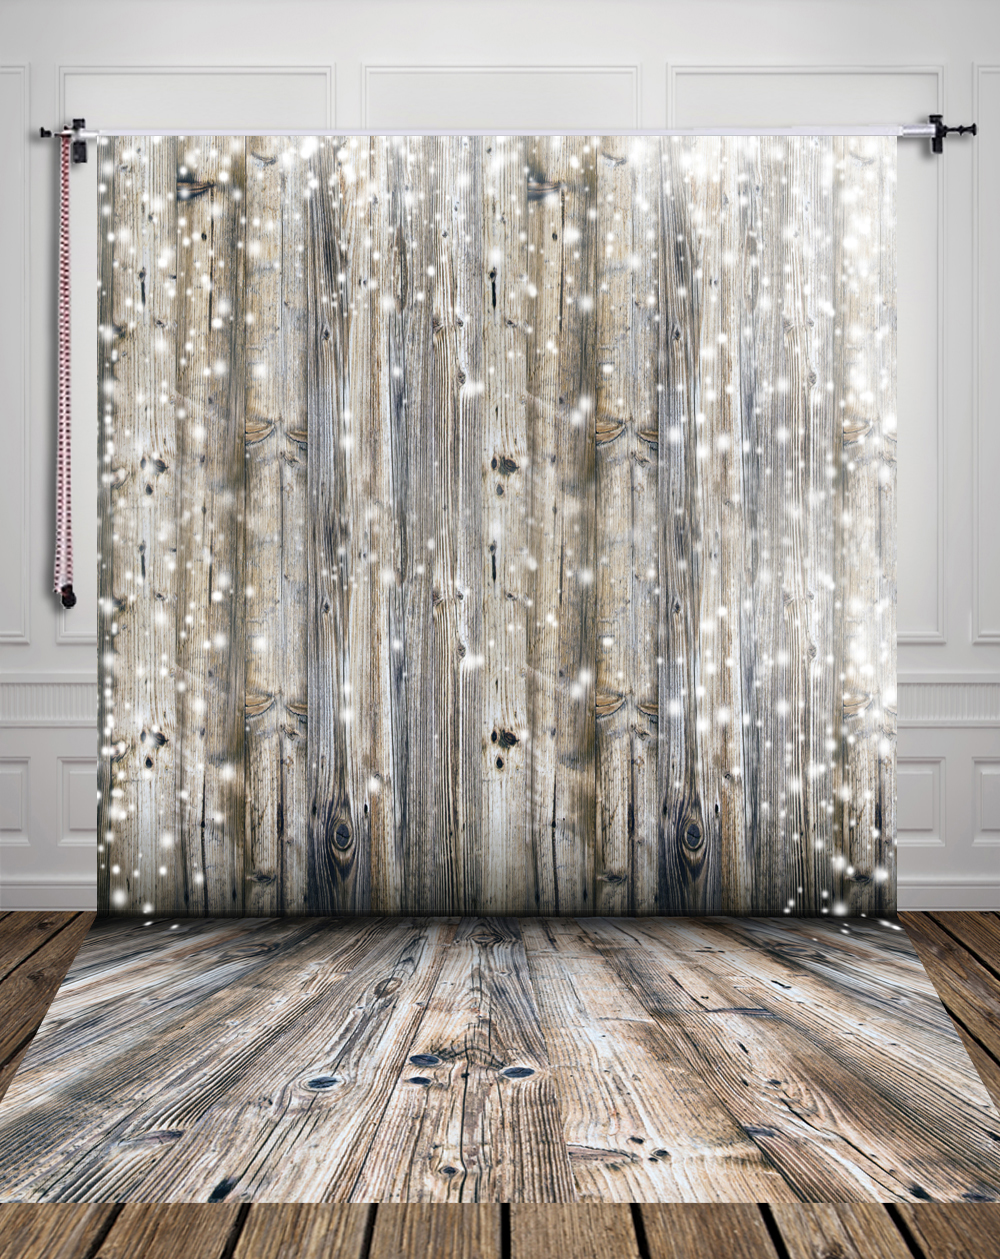 Studio Photography Background Christmas Wood Backdrop Studio Newborn Backdrops Snow Sparkle Backdrop D-2389 hk free shipping new 2 axis bgc brushless camera gimbal gopro3 controller ptz aluminum full set of parts